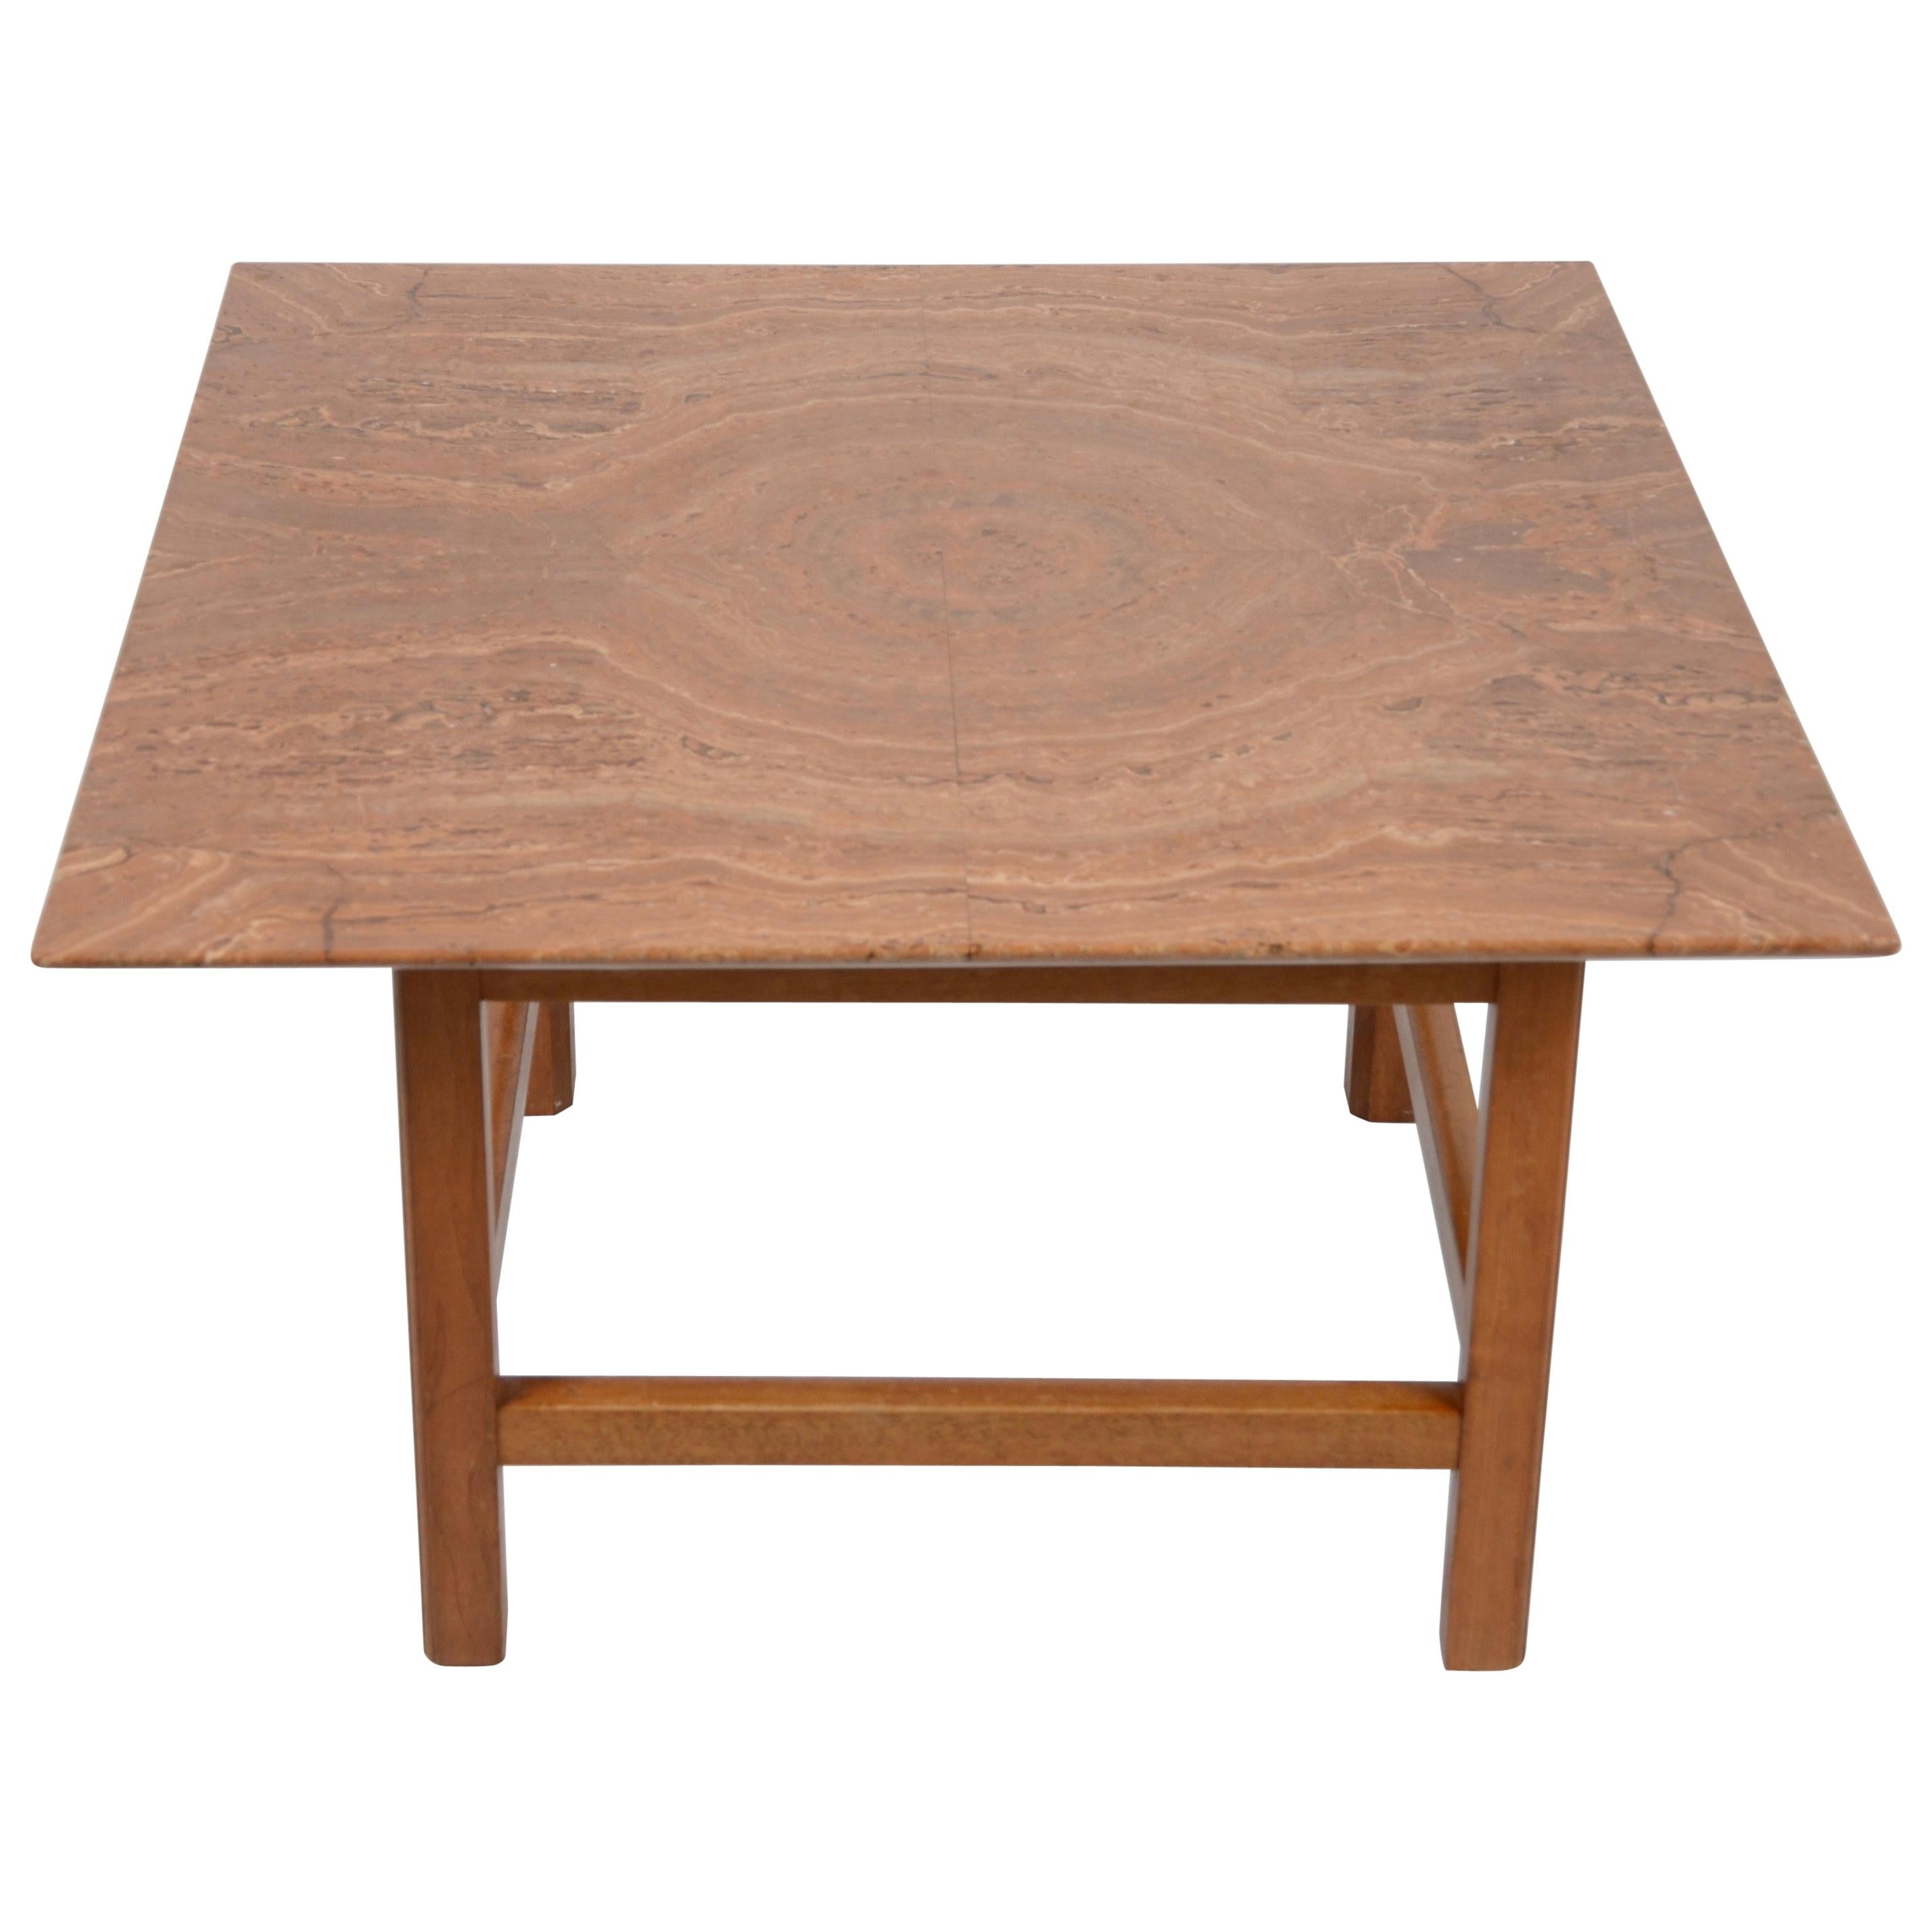 Occasional Table, Marble Top by Josef Frank, Firma Svenskt Tenn, 1940s-1950s